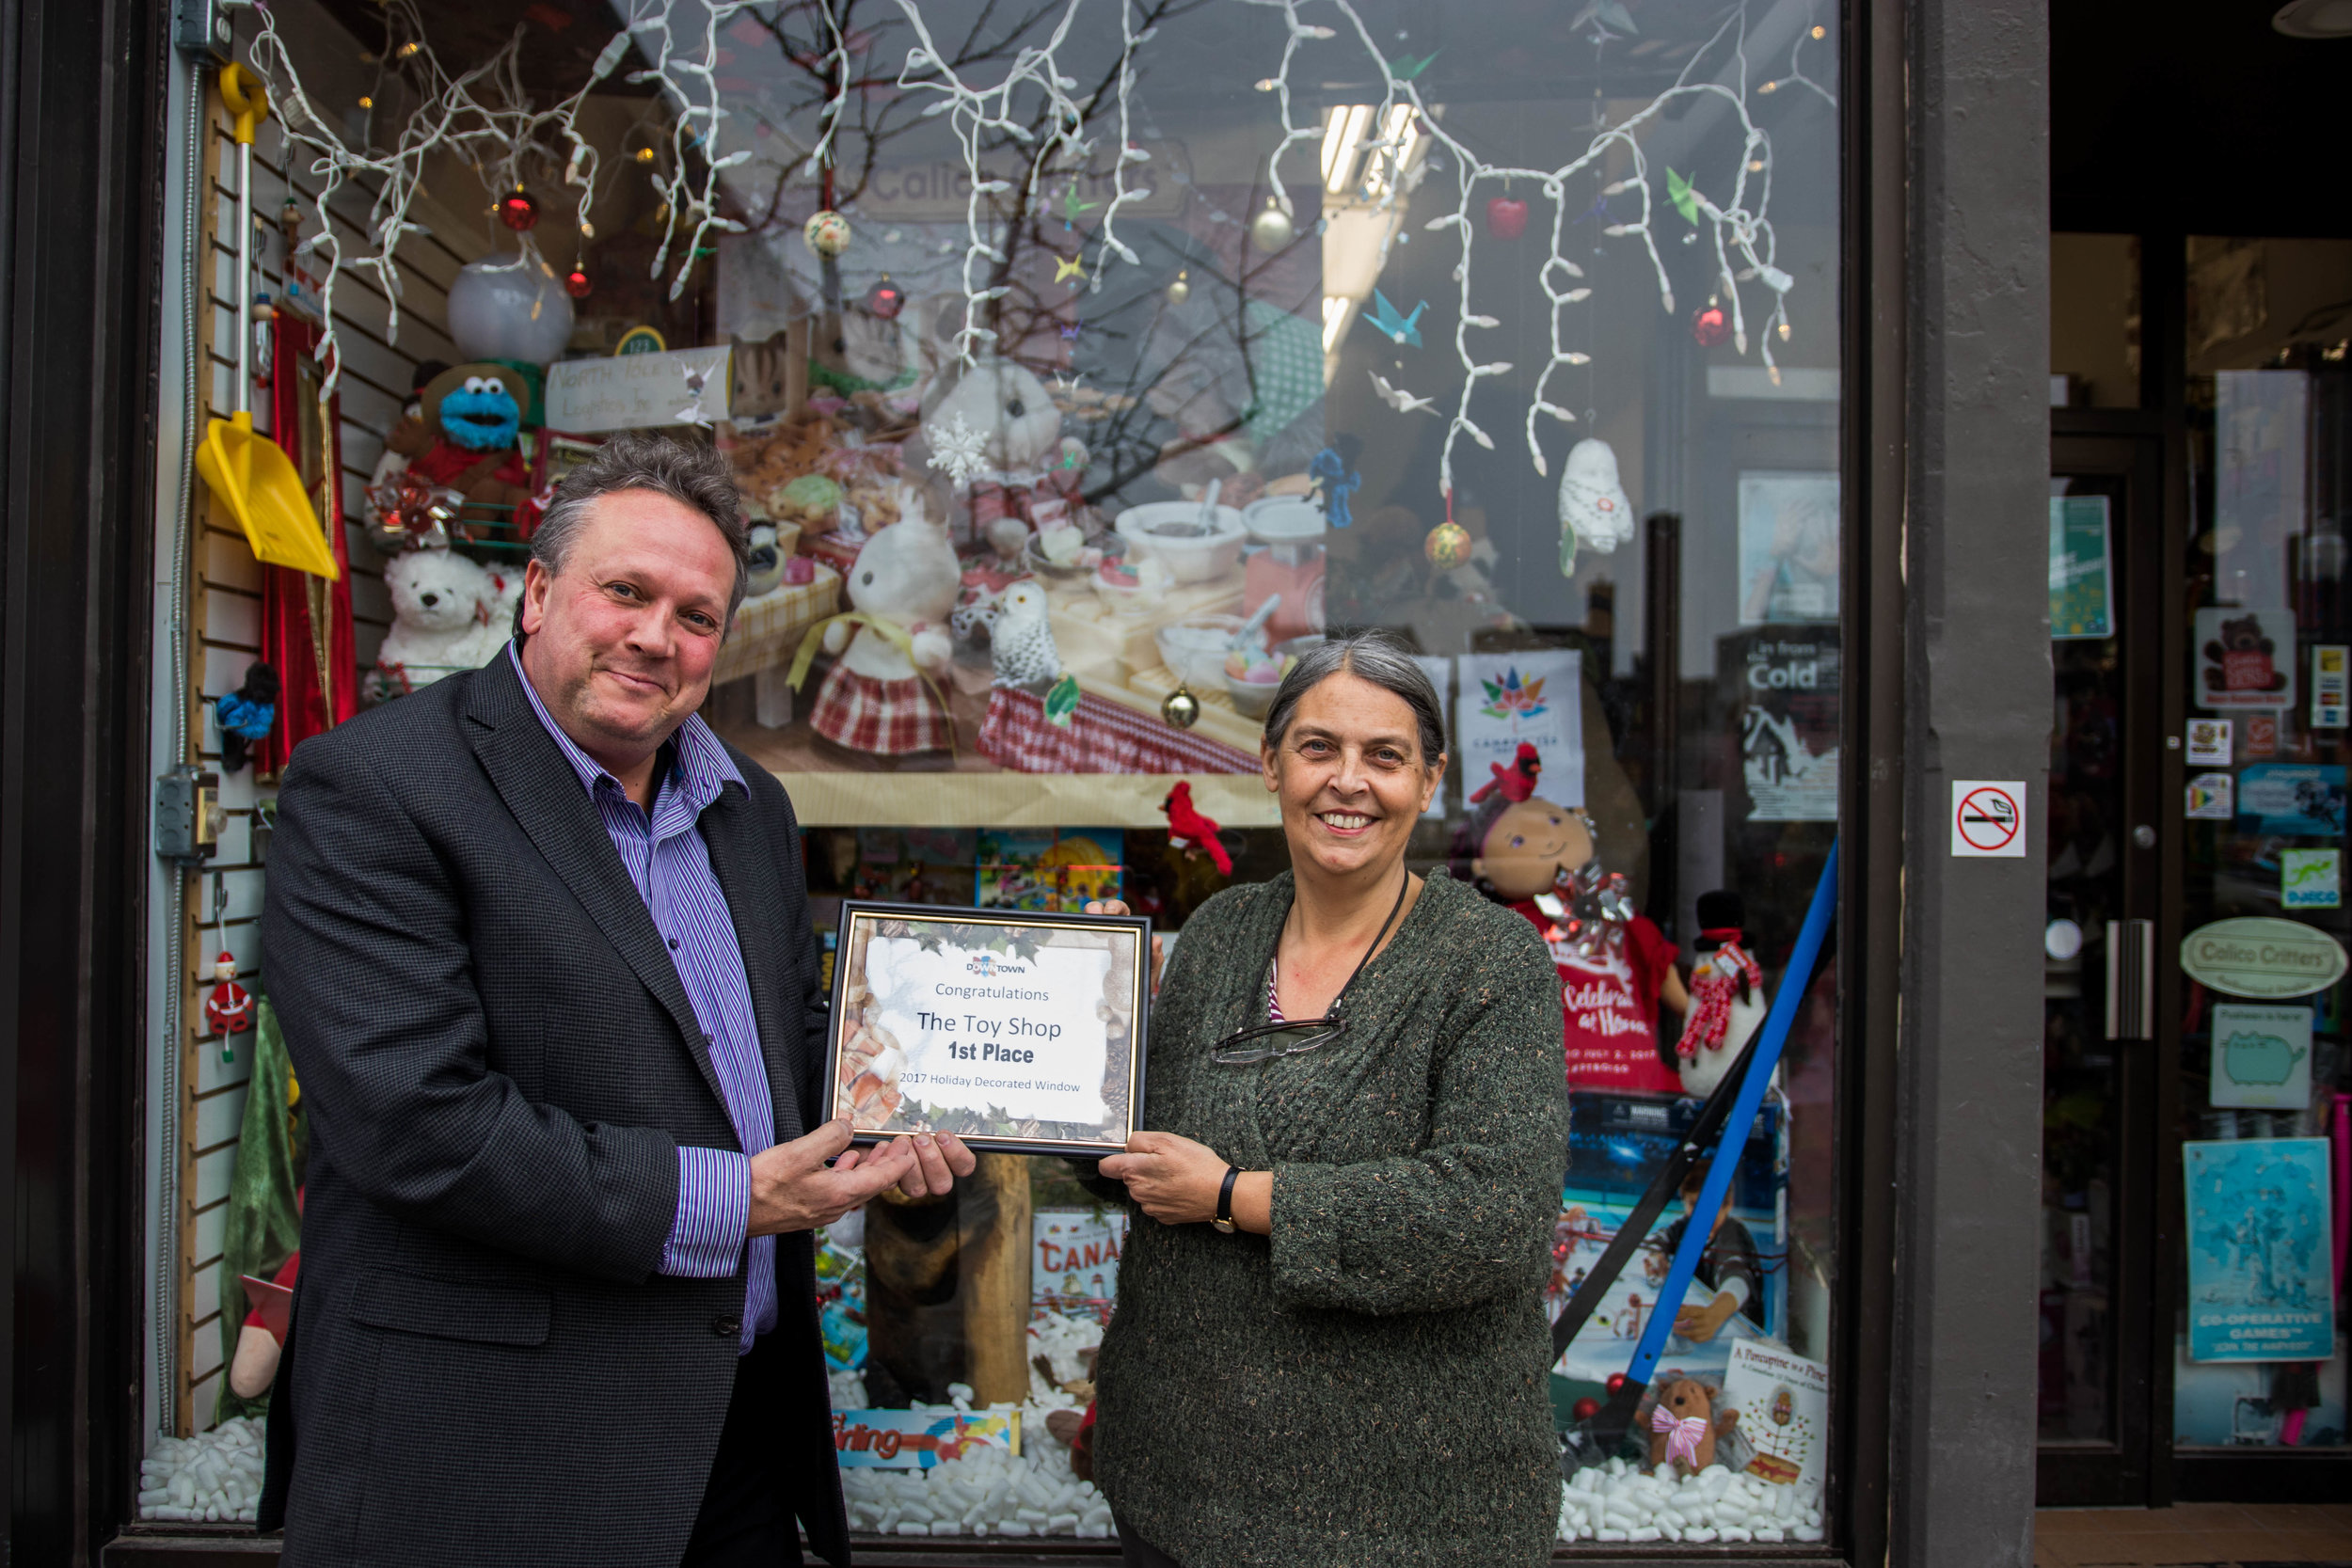 DBIA Executive Director Terry Guiel presents Toy Shop owner Jean Grant with her first place prize in the annual Holiday Window Contest.